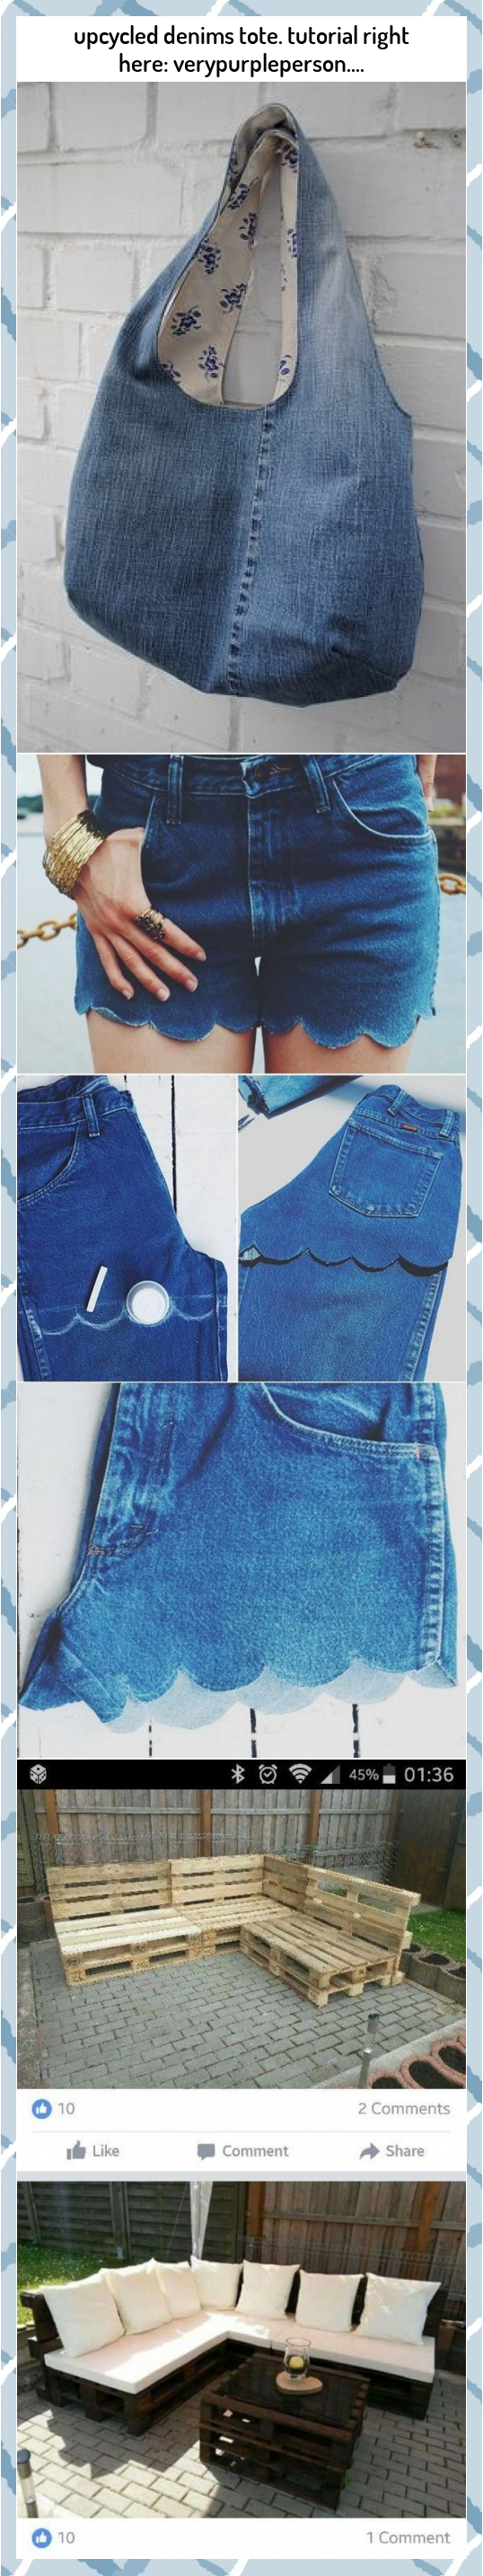 upcycled denims tote tutorial right here verypurpleperson